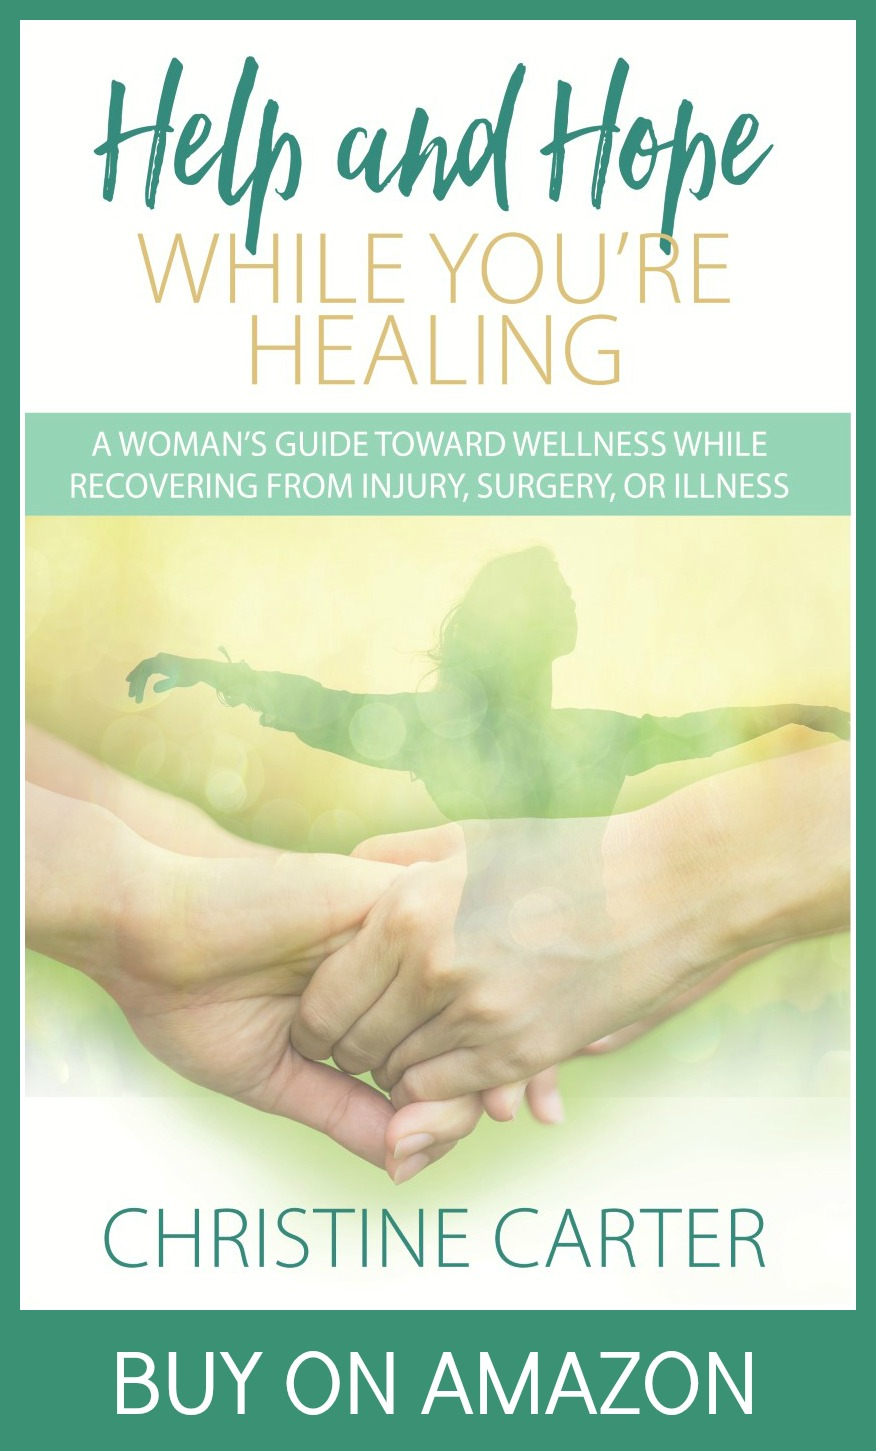 Book for women recovering from injury, surgery, or illness